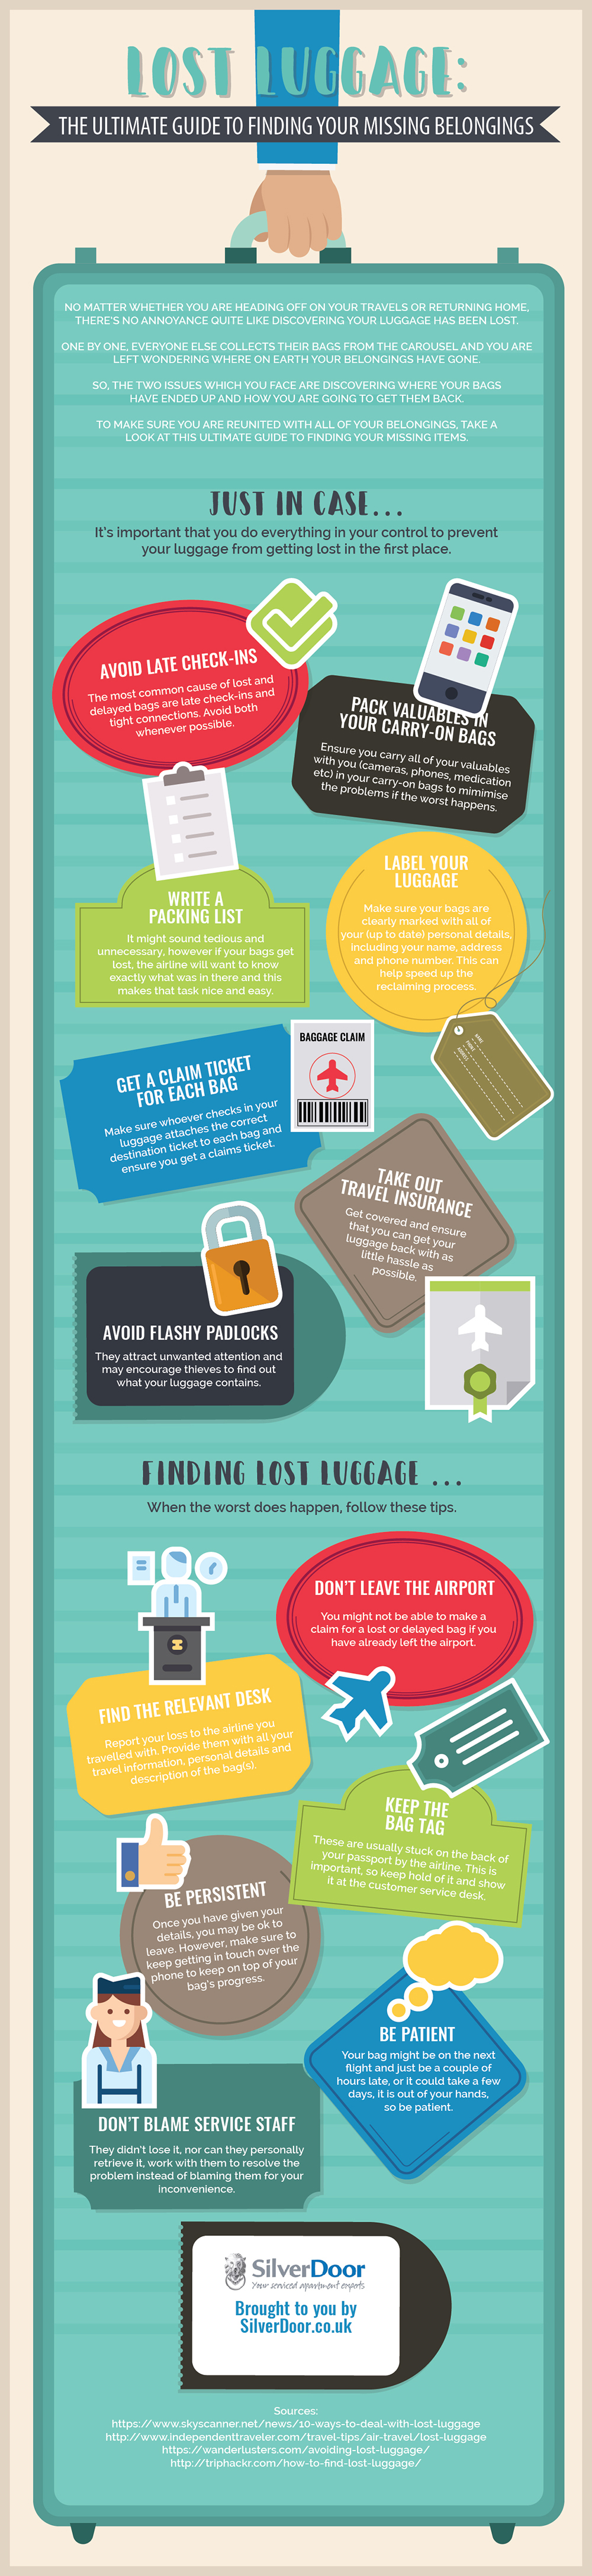 How to Retrieve Lost Luggage: The Ultimate Guide - Infographic